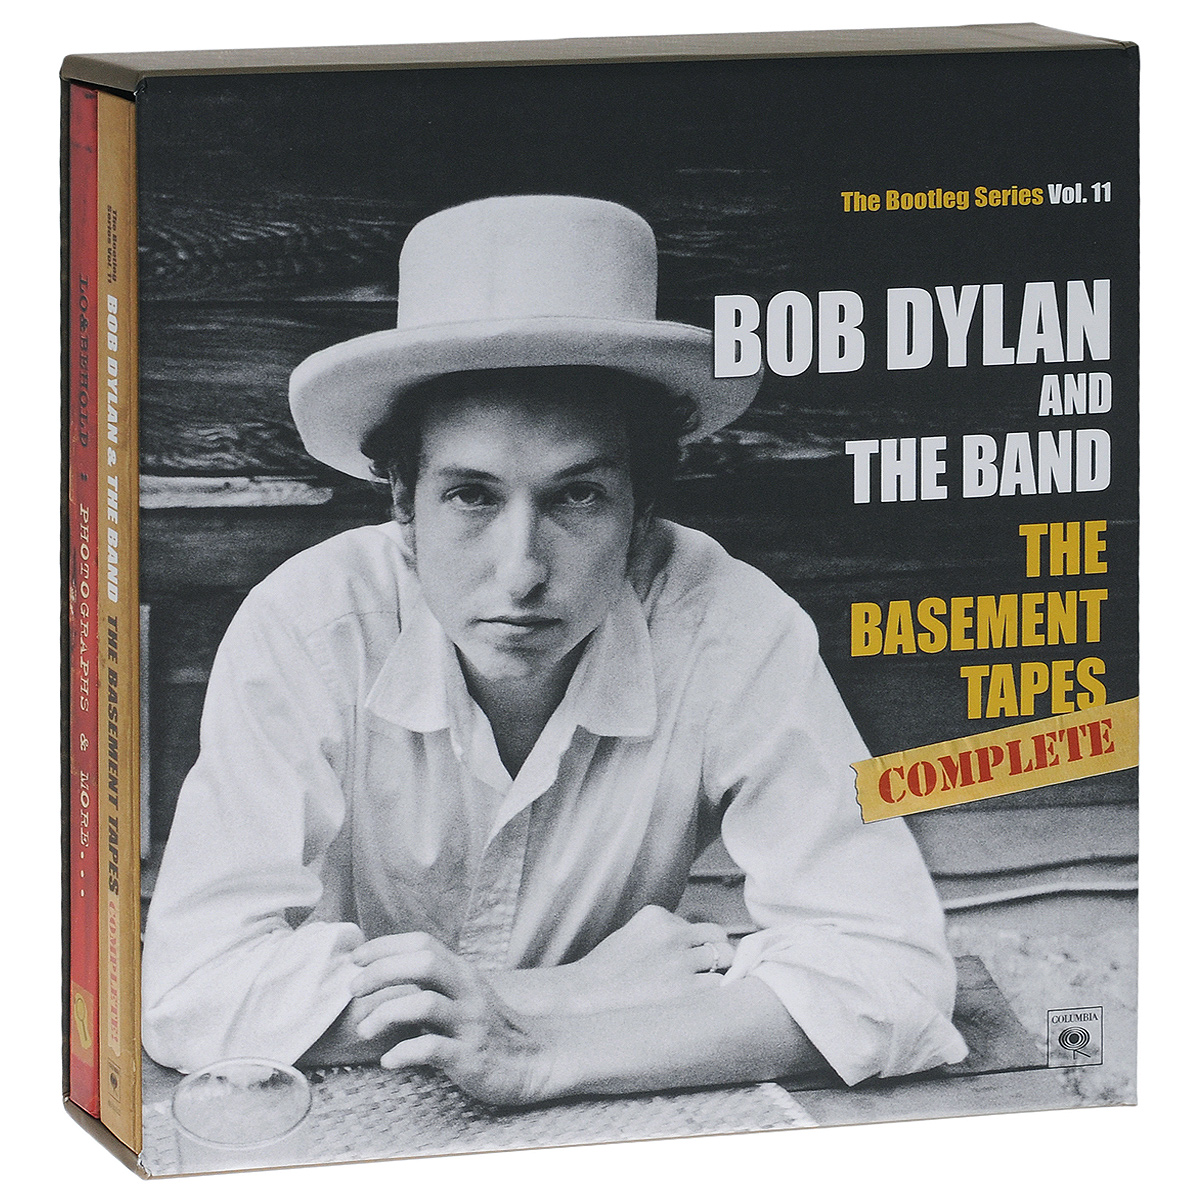 Bob Dylan And The Band Bob Dylan and The Band. The Bootleg Series Vol. 11: The Basement Tapes Complete. Limited Deluxe Edition (6 CD) боб дилан bob dylan and the band bob dylan the complete album collection vol 1 47 cd